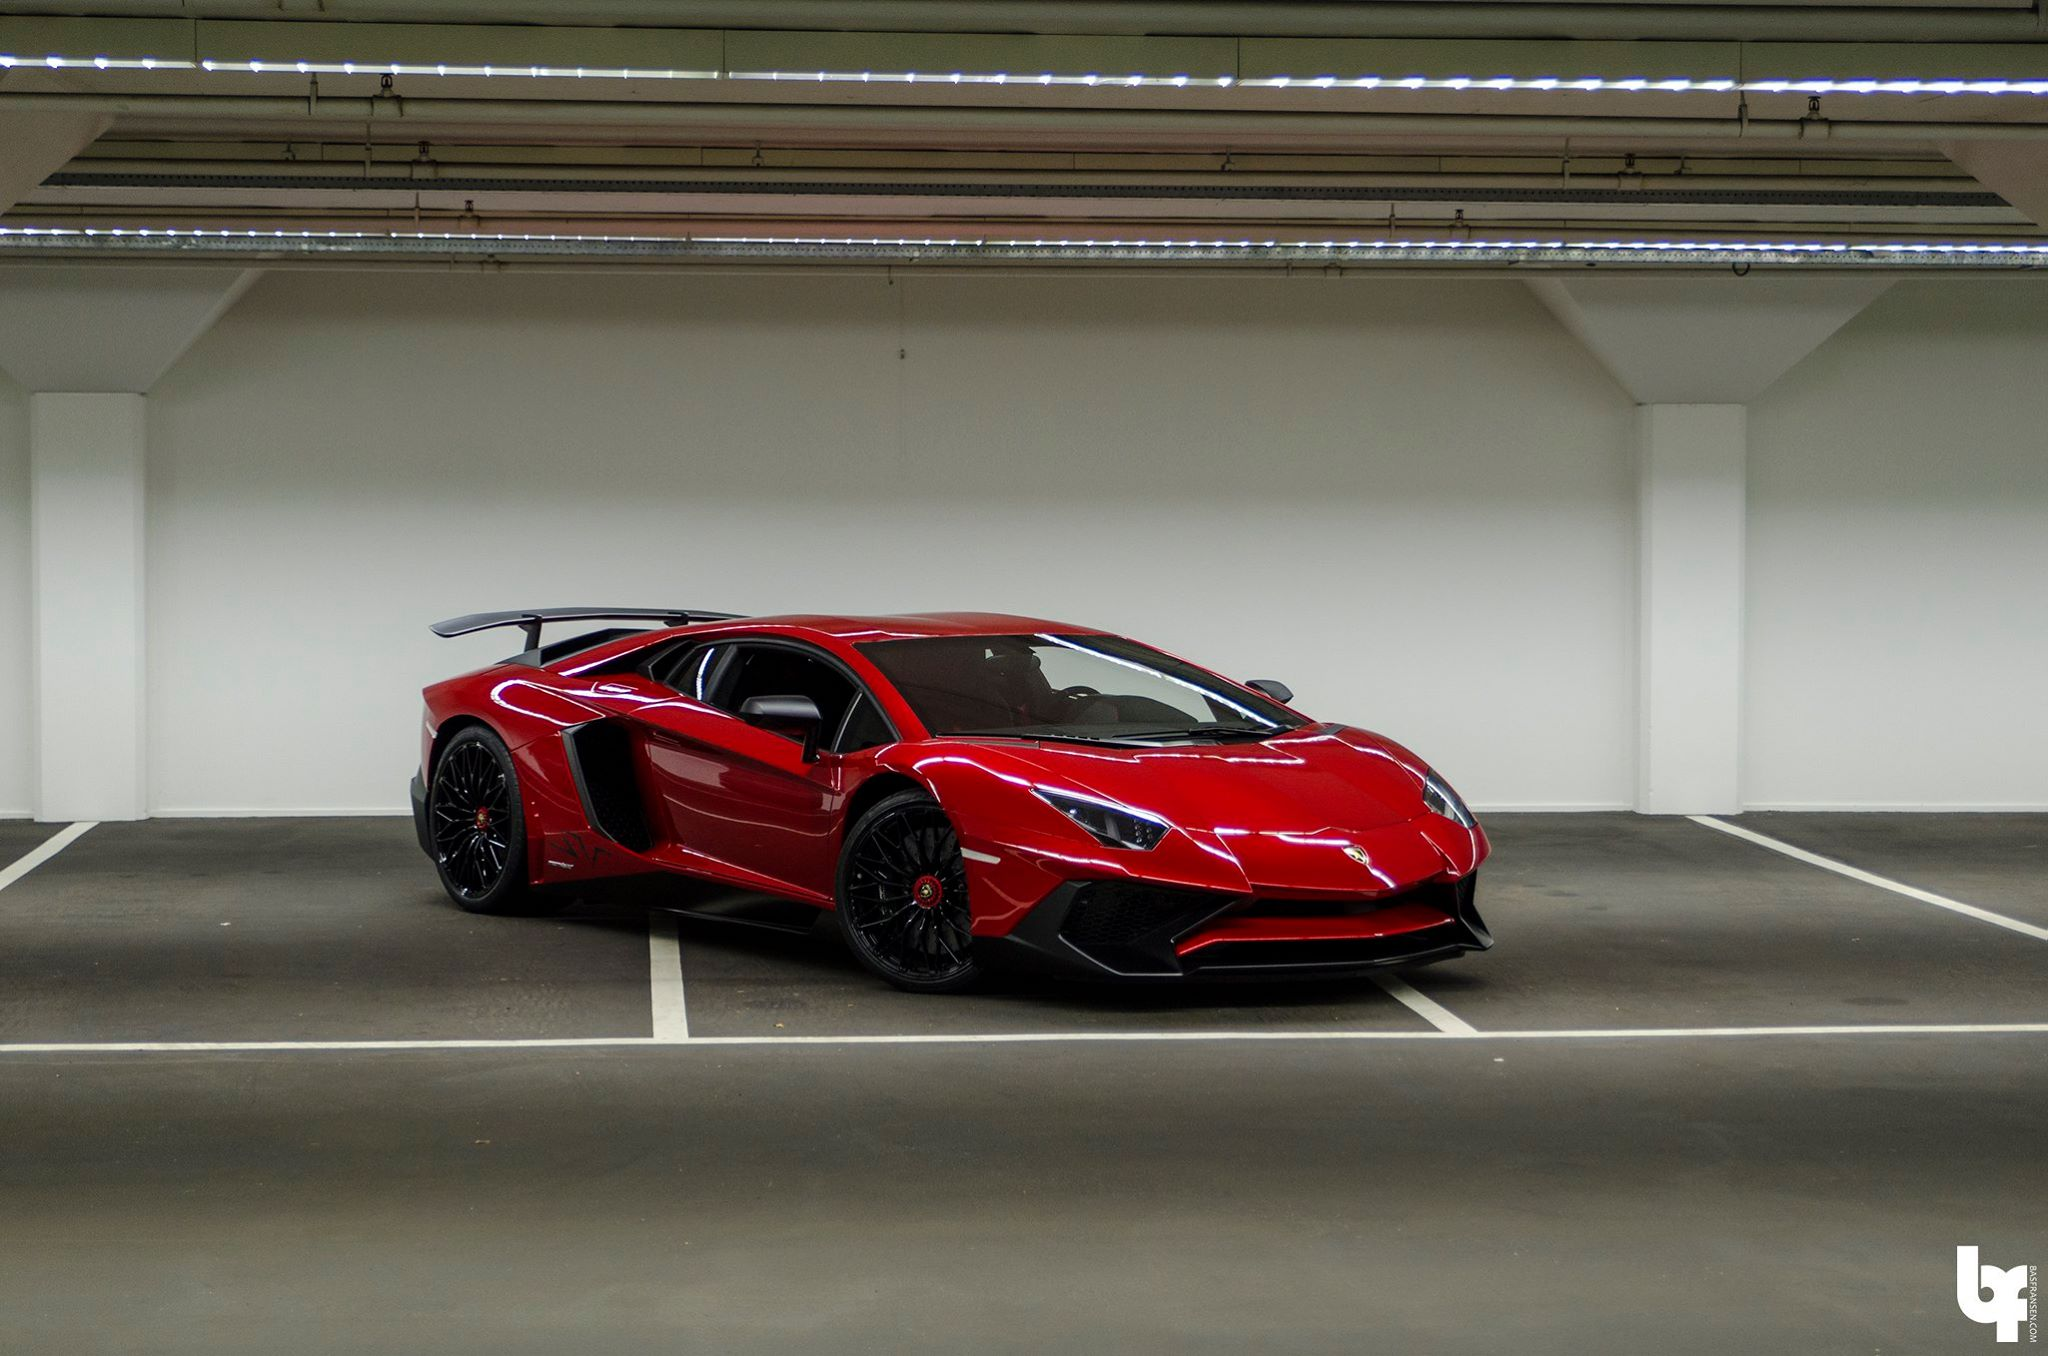 dj afrojack 39 s new rosso bia lamborghini aventador sv gtspirit. Black Bedroom Furniture Sets. Home Design Ideas